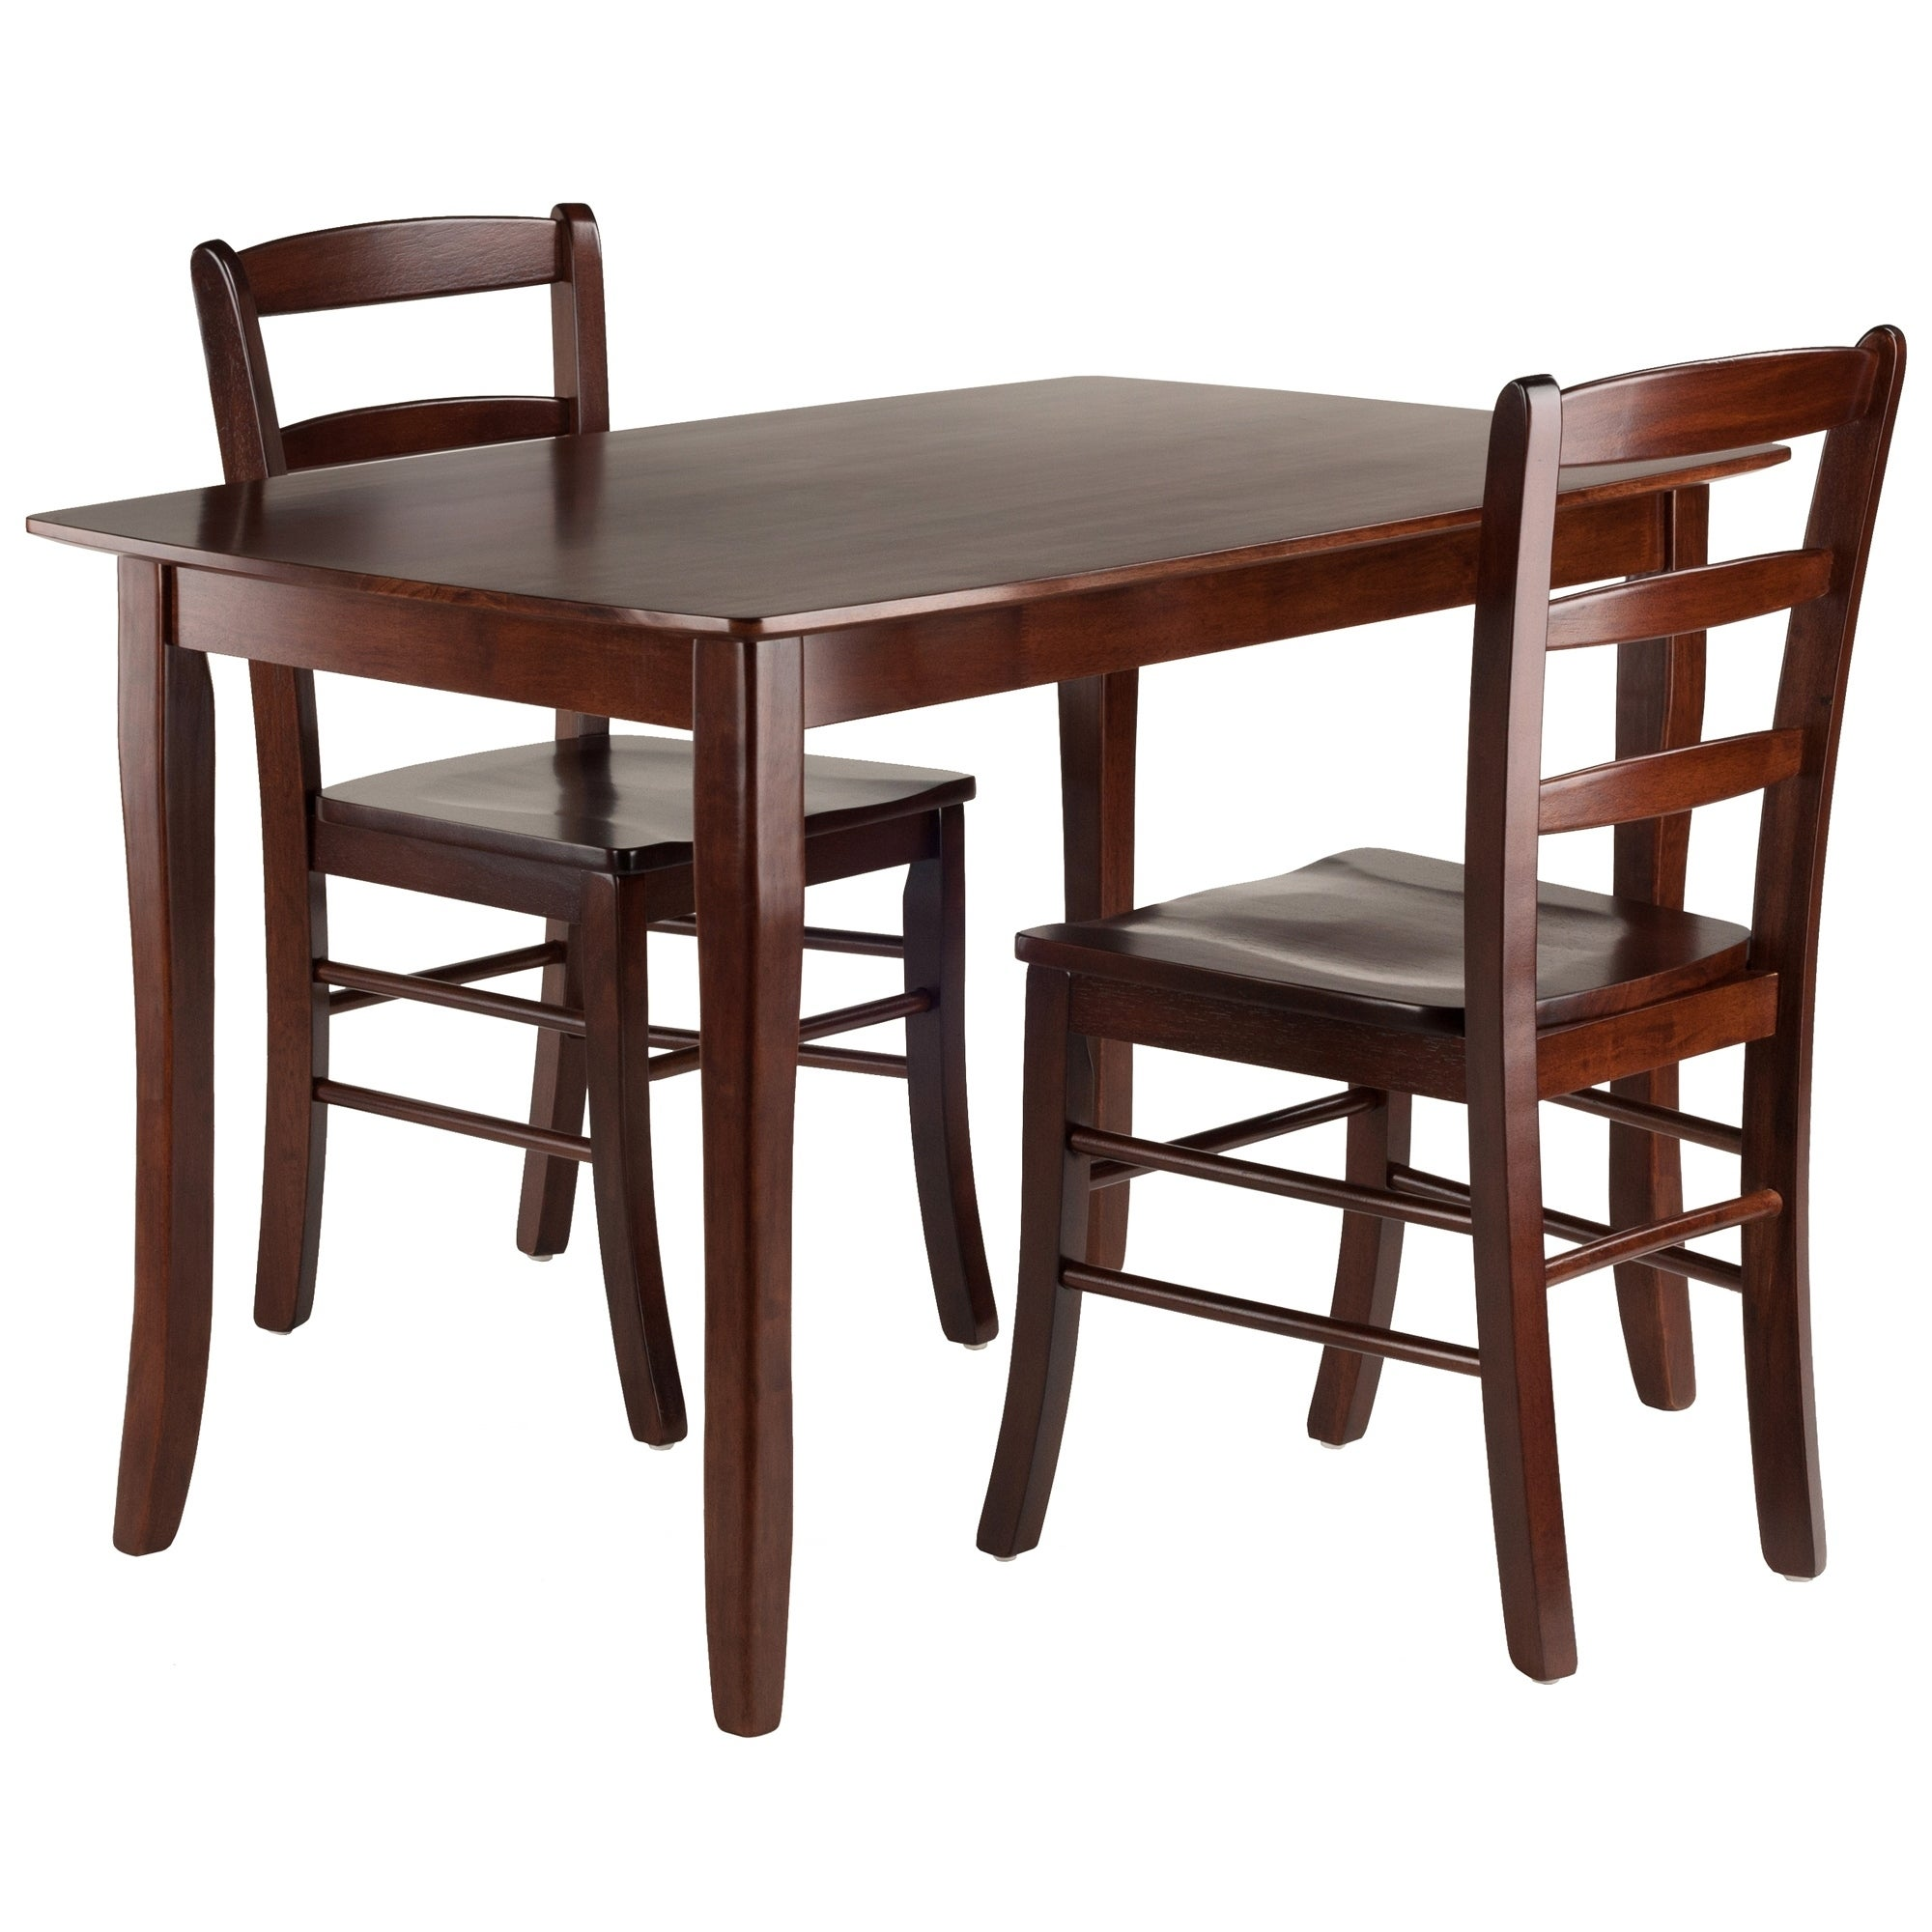 Inglewood 3 Pc Set Dining Table W 2 Ladderback Chairs